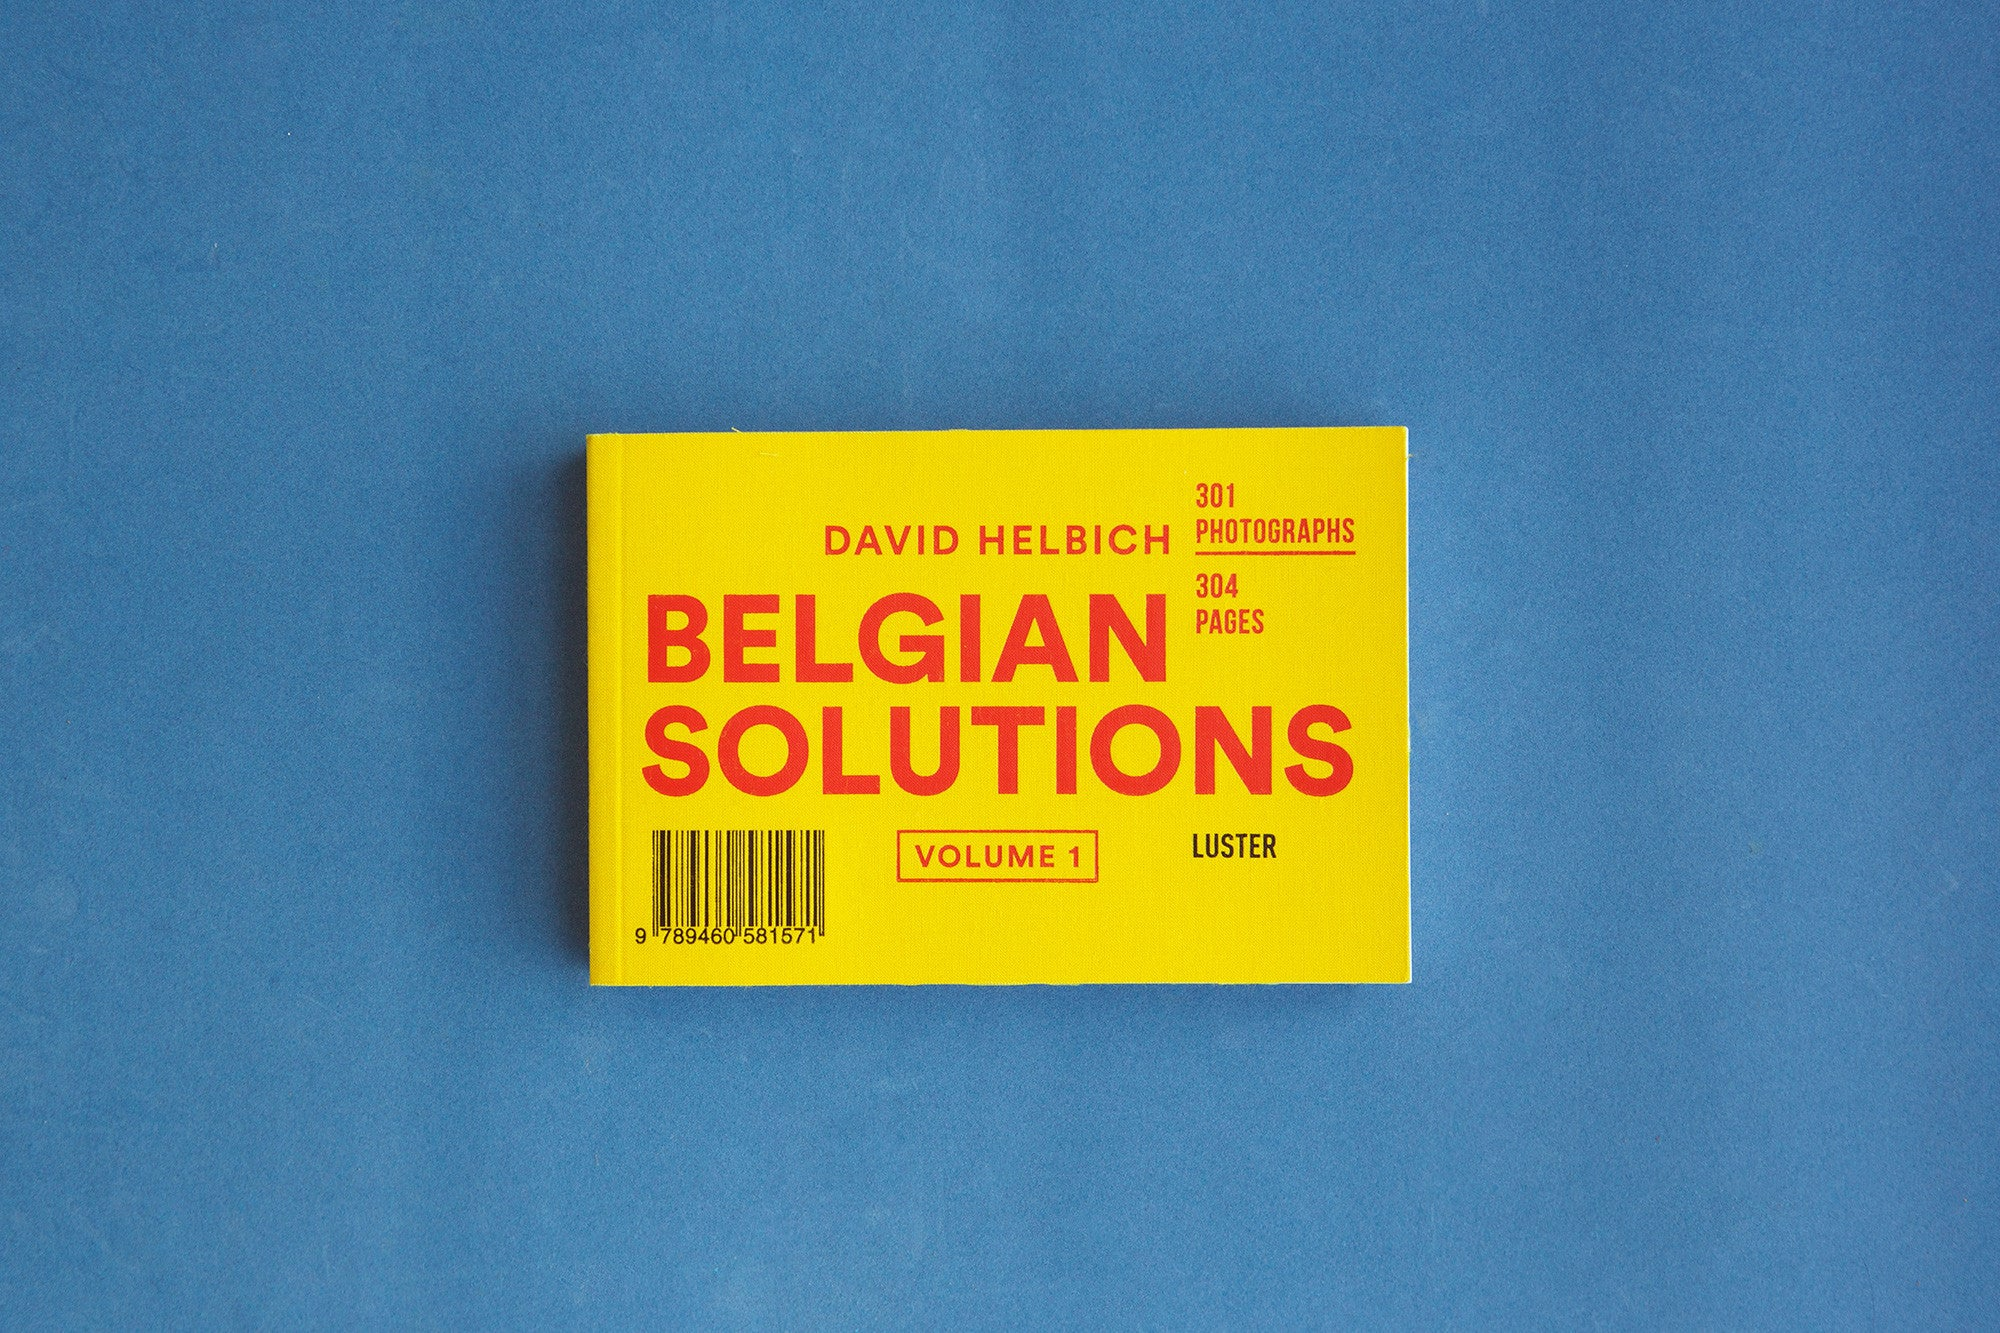 Belgian Solutions Vol. 1